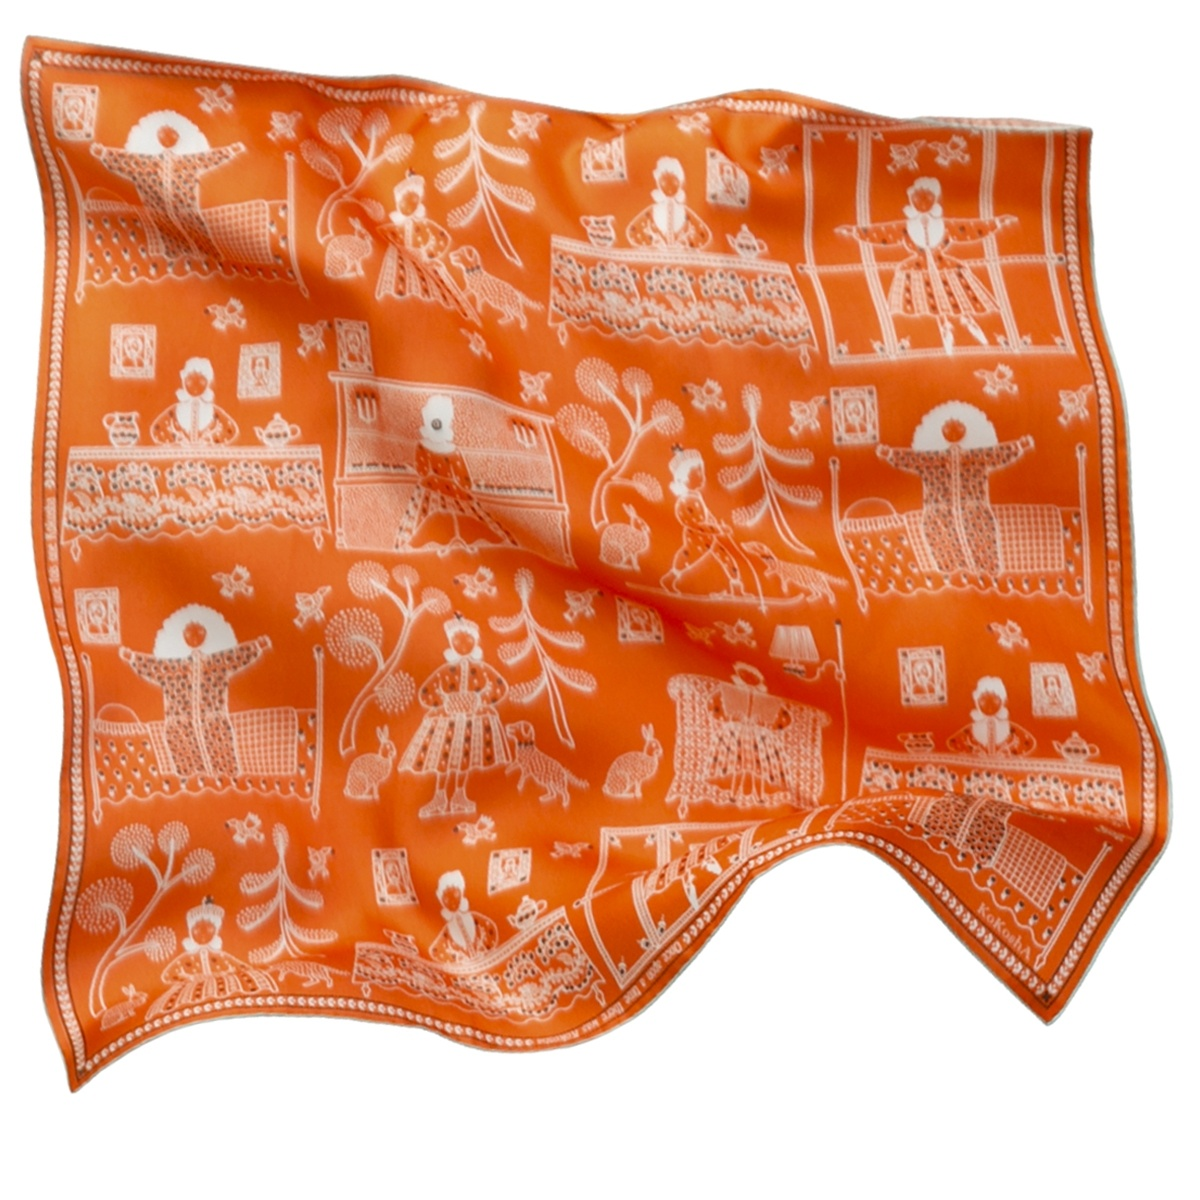 "Scarf ""Once upon a time there was Kokosha"" silk 65x65 on an orange background"